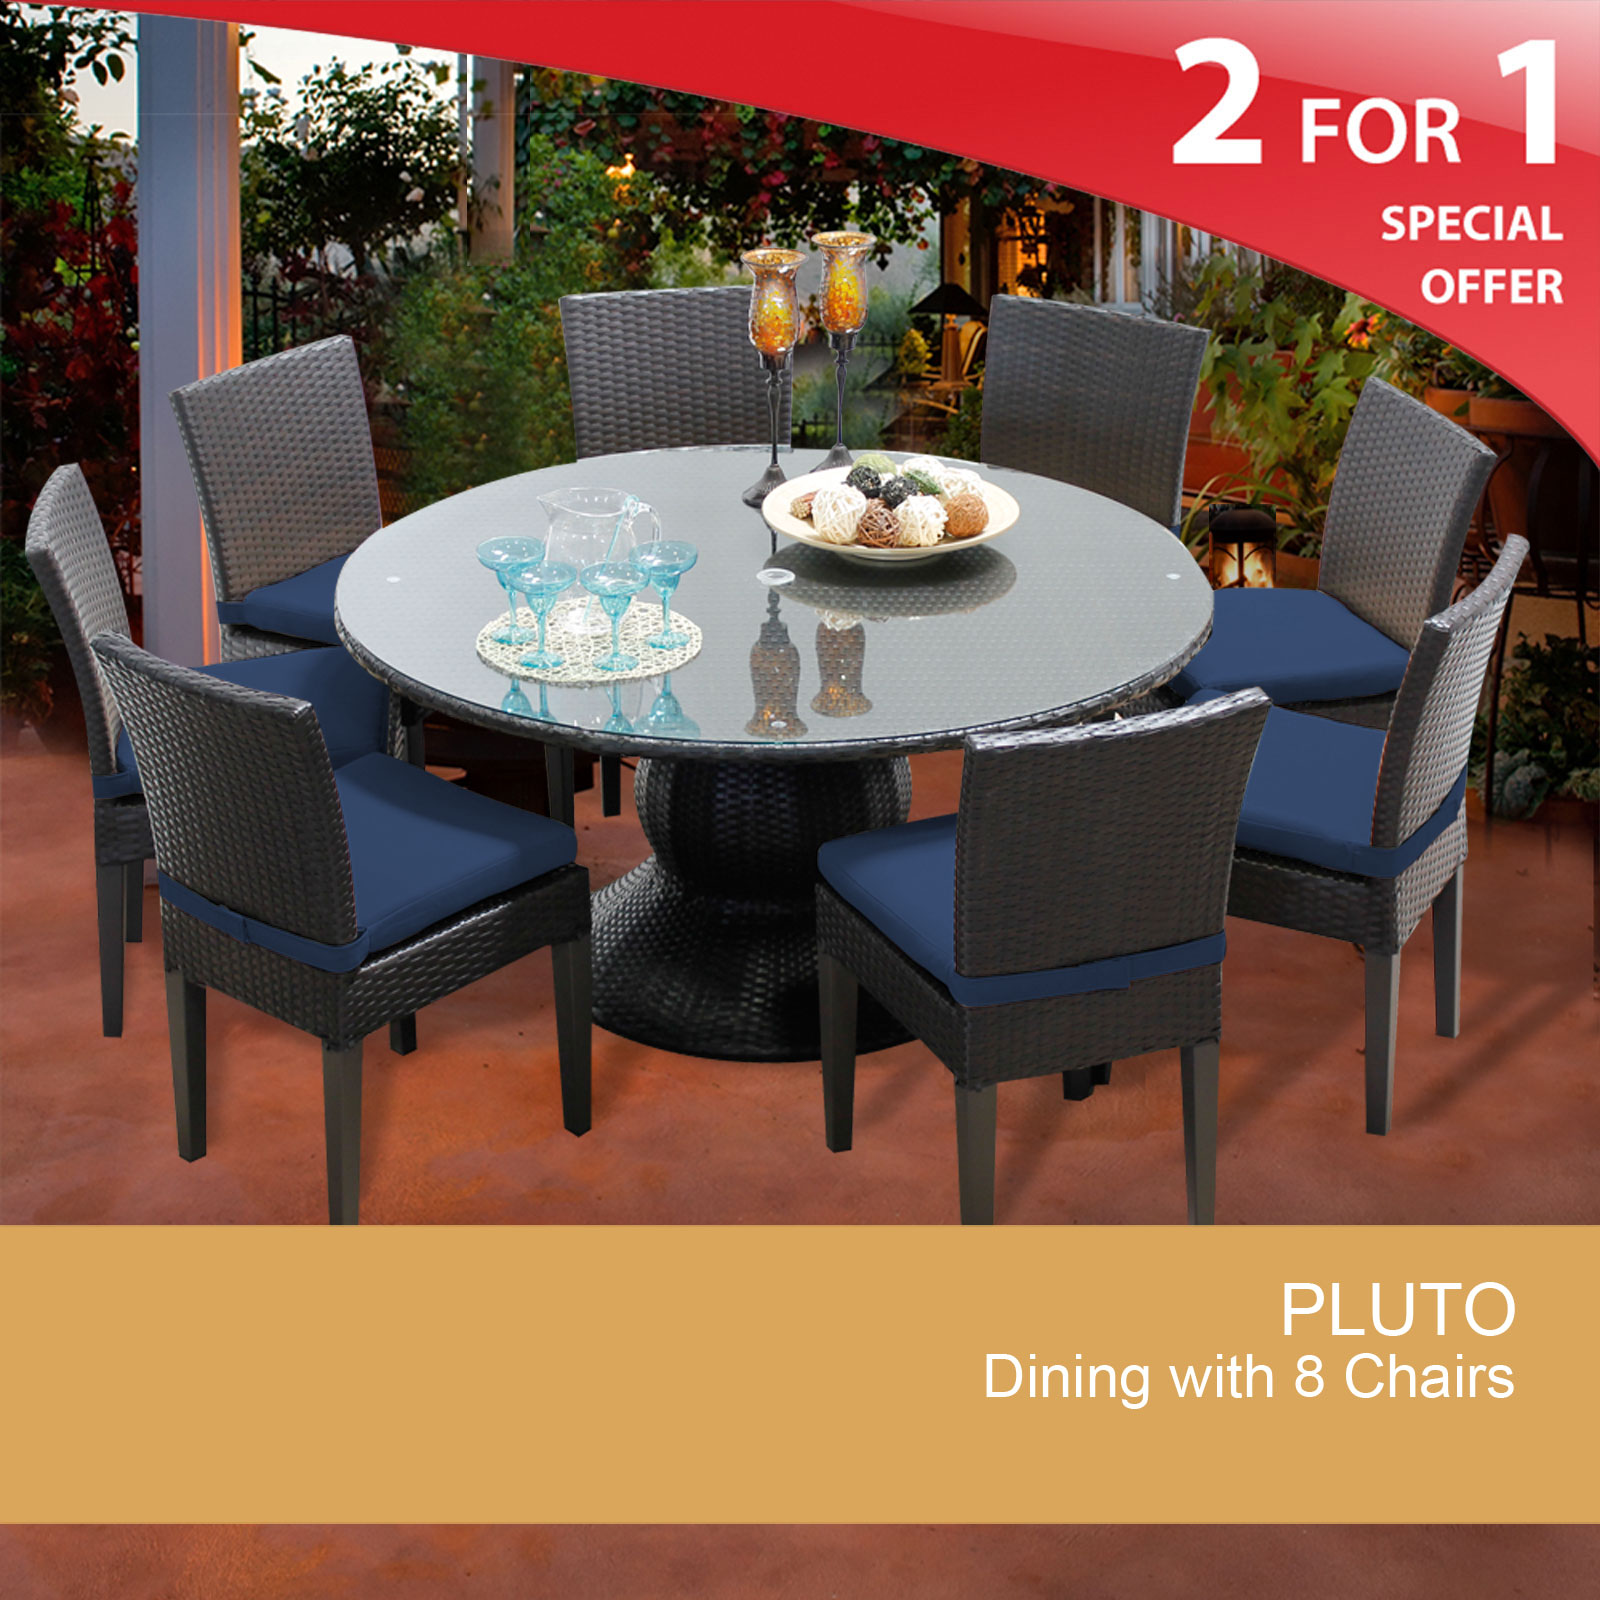 Pluto 60 Inch Outdoor Patio Dining Table With 8 Chairs